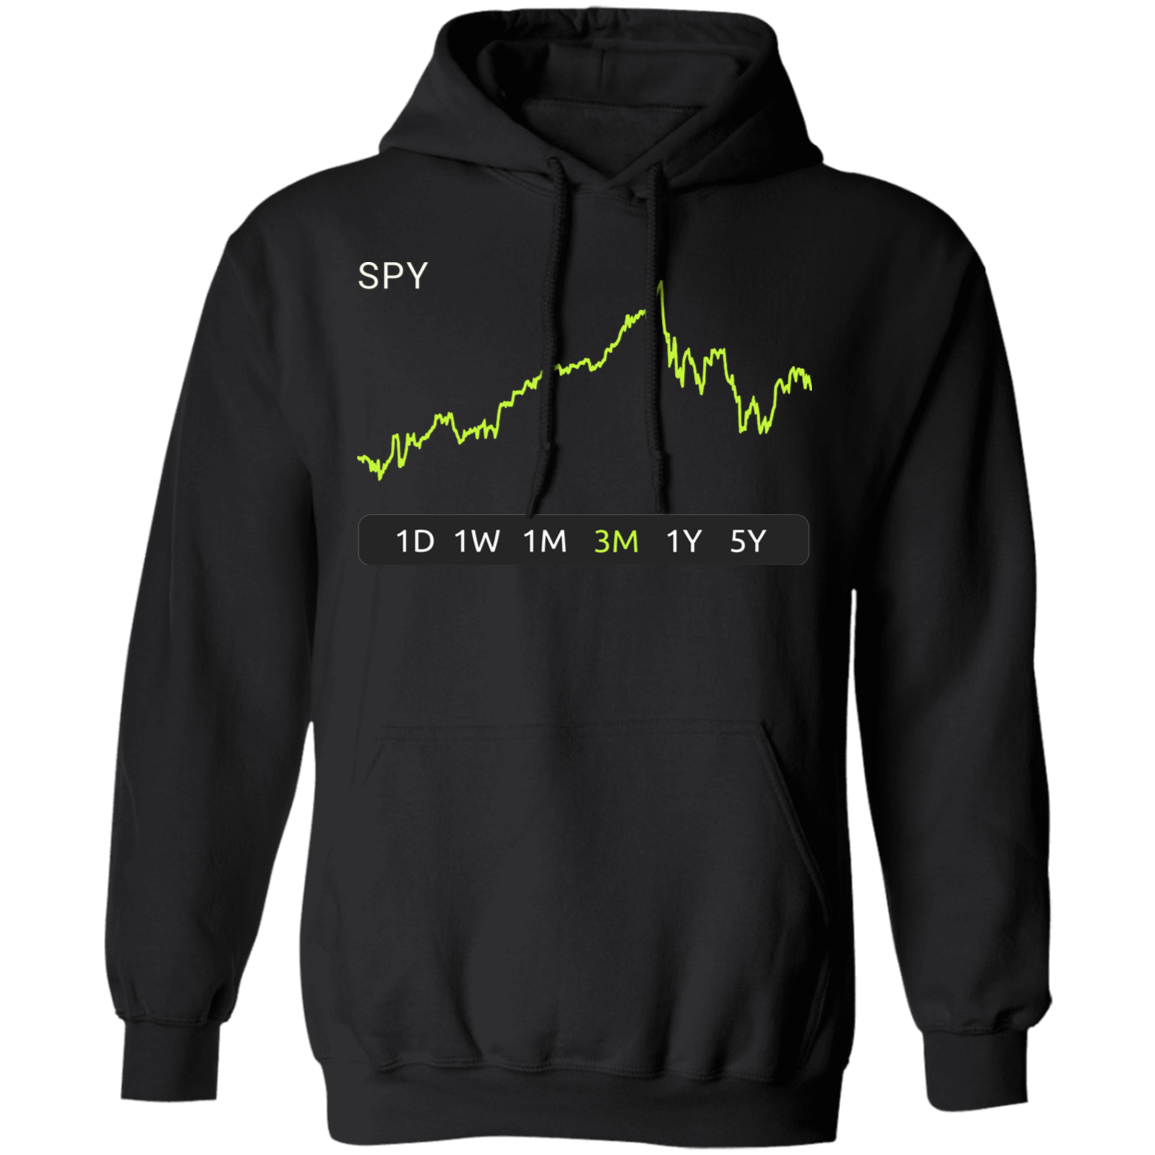 SPY Stock 3m Pullover Hoodie